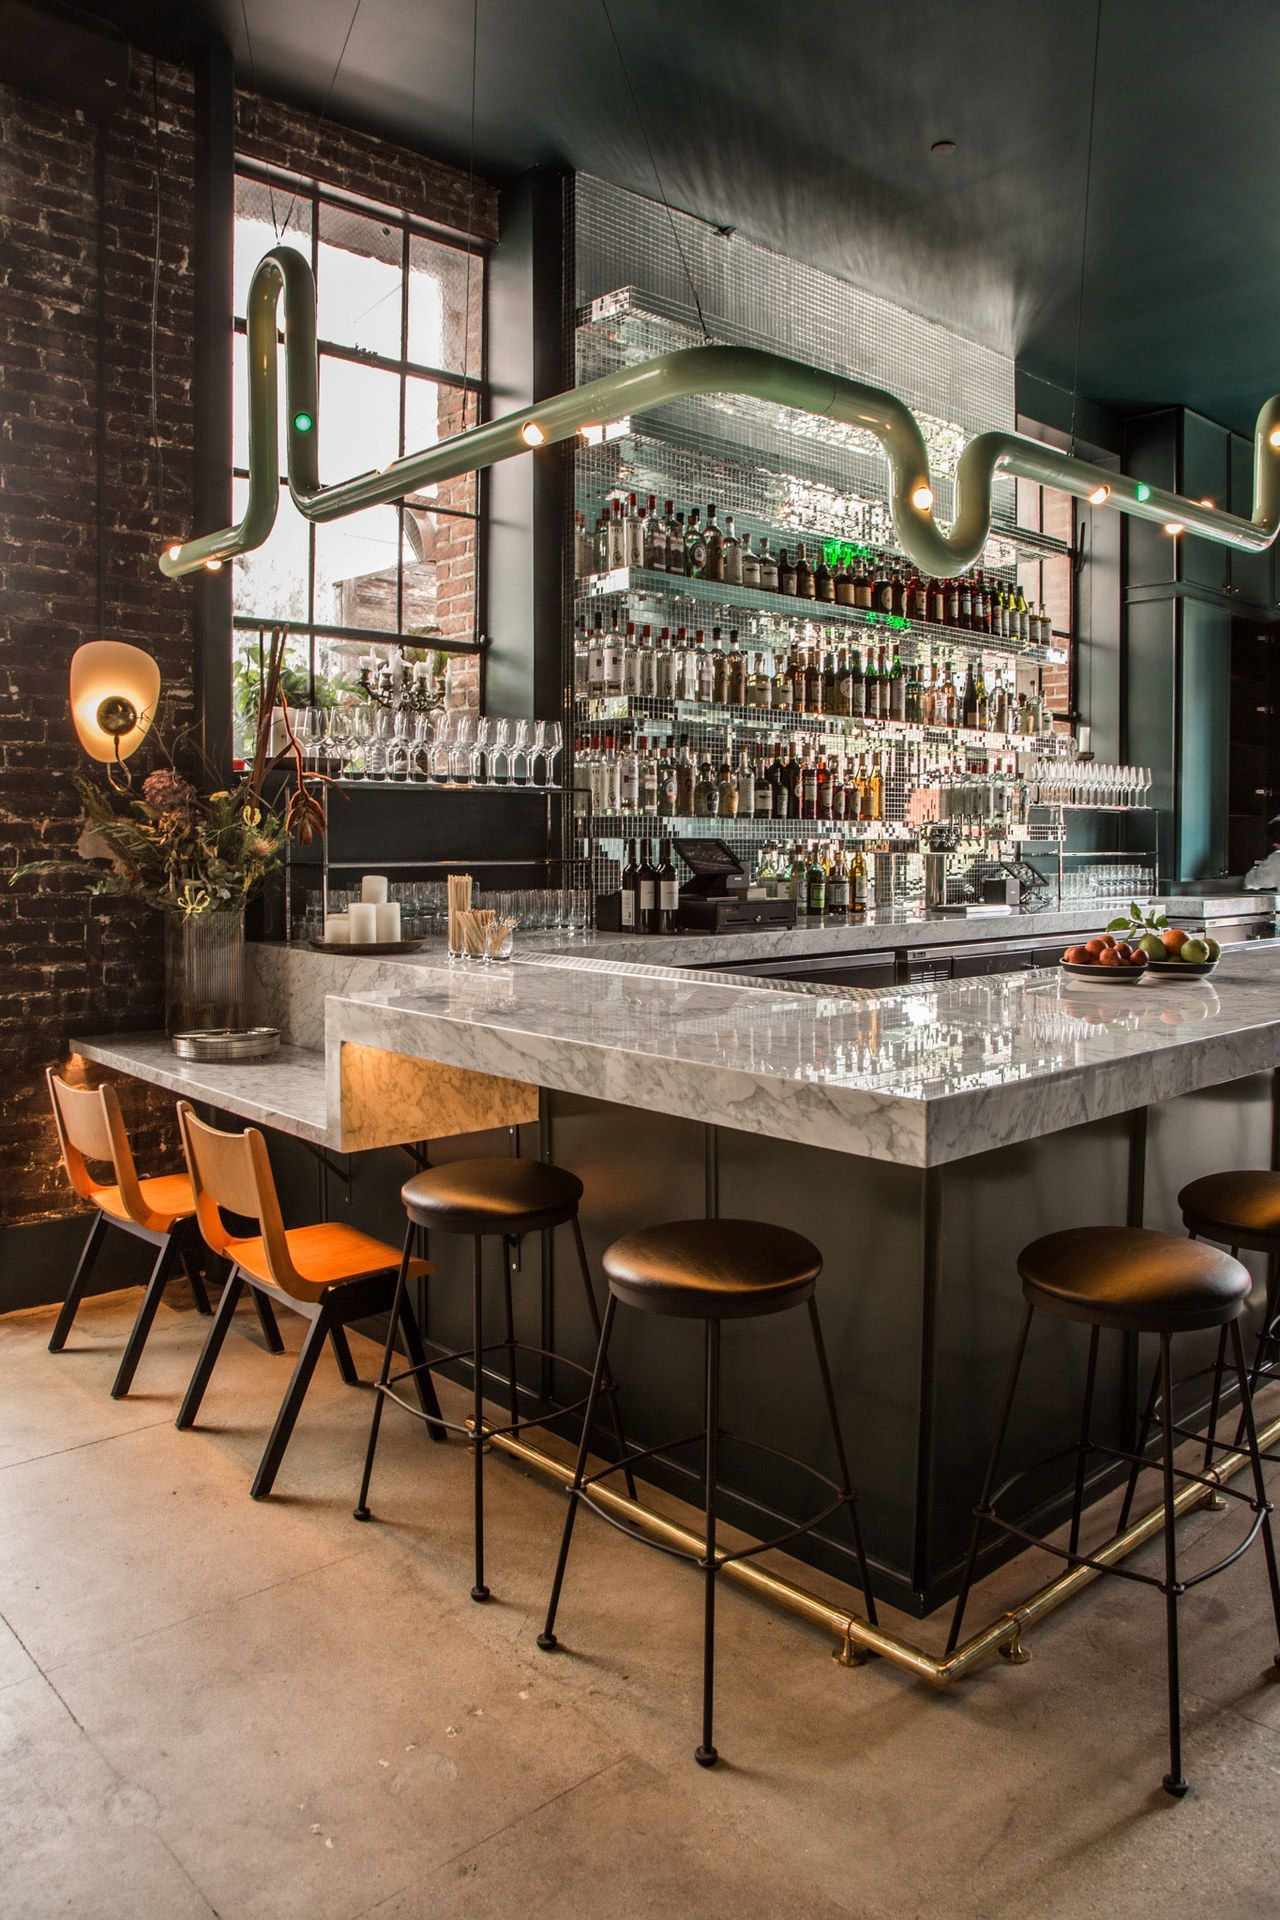 The New Firehouse Hotel In L A Proves Design Risks Can Pay Off Big Time Bar Design Restaurant Bar Interior Design Restaurant Interior Design